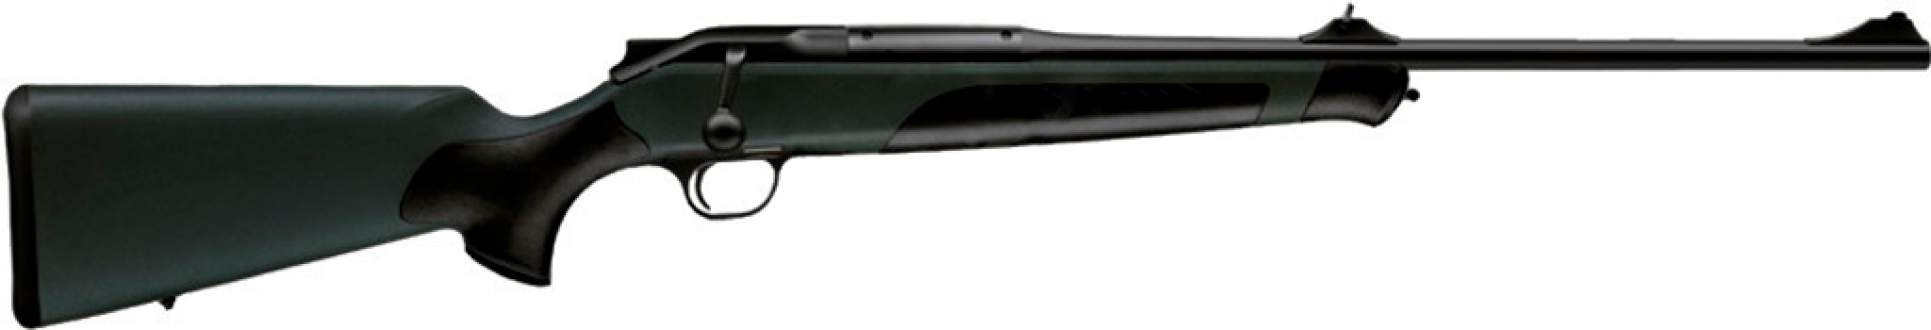 Карабин Blaser R8 Professional iC Dark Green кал. 30-06 (без антабок)